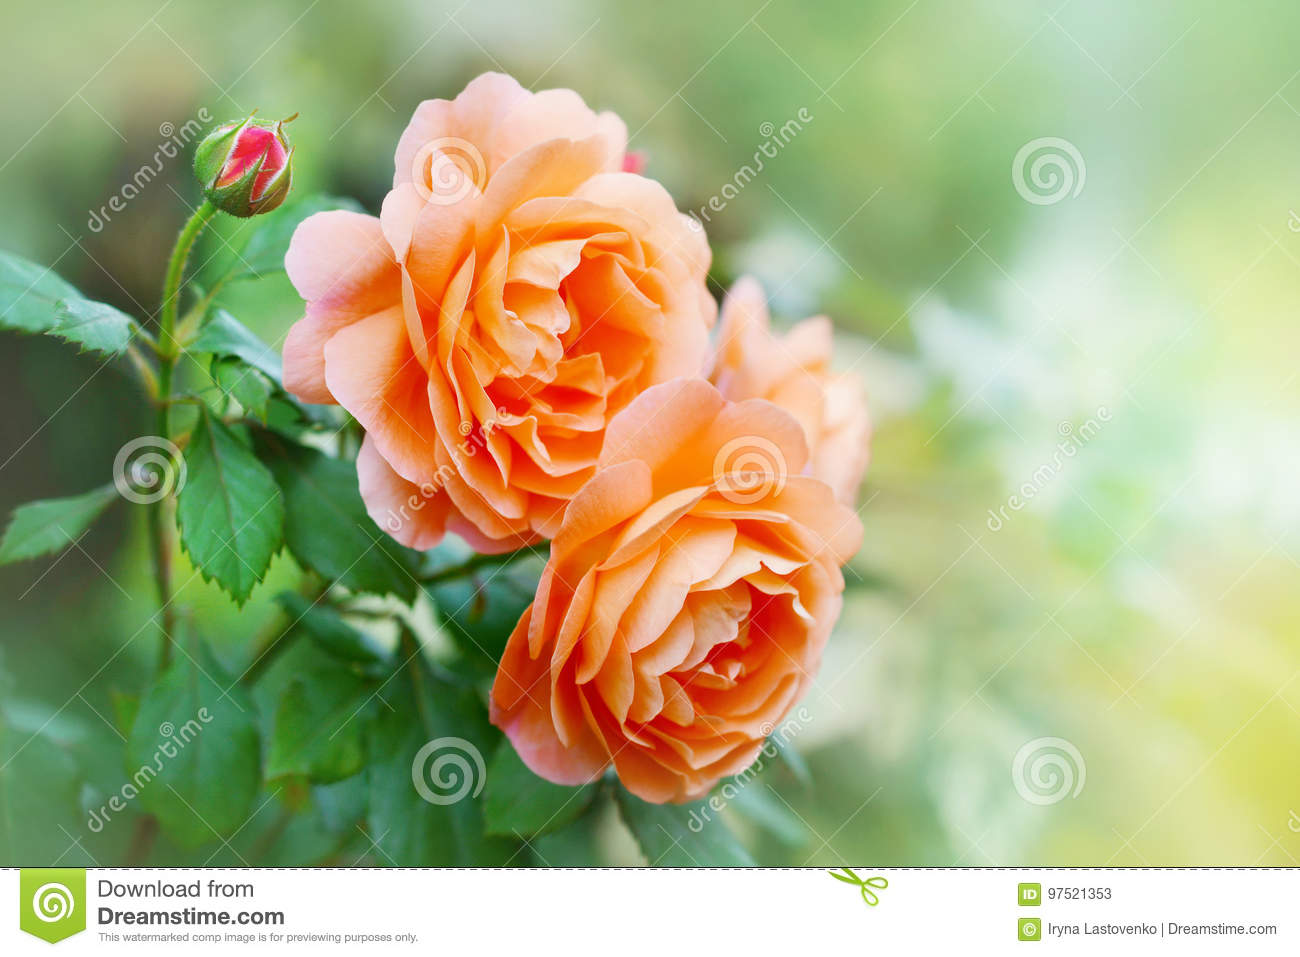 Flower of orange rose in the summer garden. English Rose Lady Emma Hamilton of David Austin.